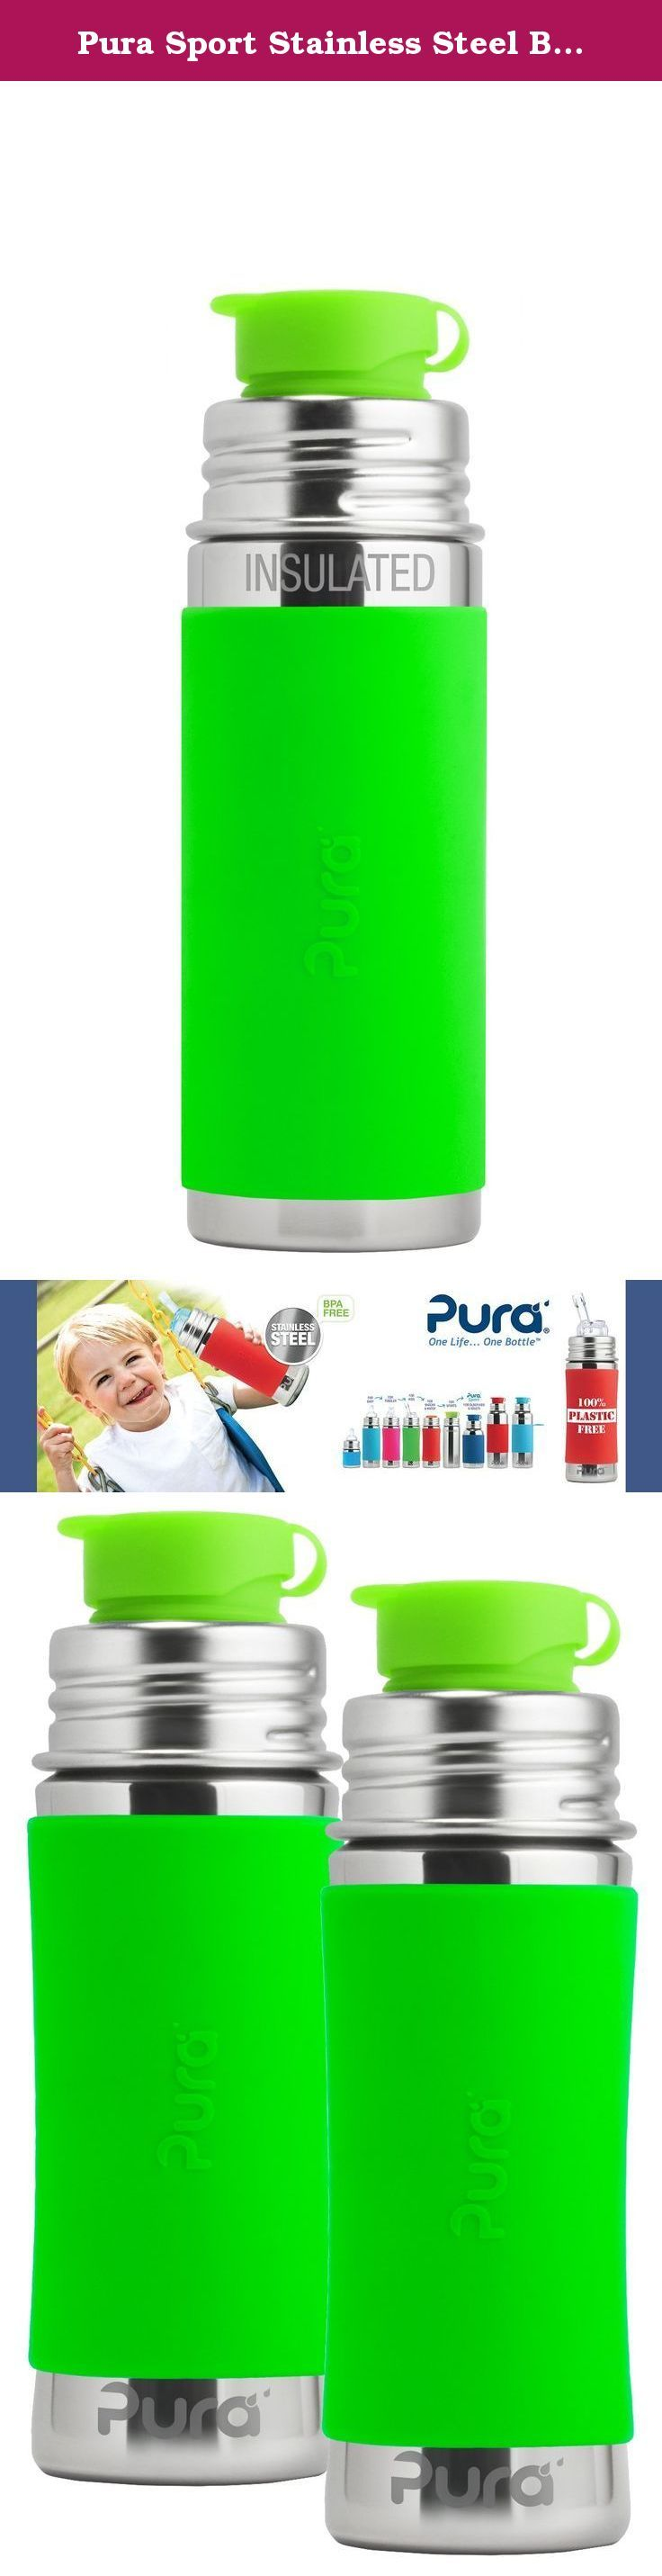 Pura Sport Stainless Steel Bottle, 11 Ounce, Set of 2, Green. Our development team took up the challenge of creating the first (and only) 100% plastic-free sport bottles in the world. Like all bottles in the Pura Sport collection, the Pura Jr Sport Bottle features a Food Grade Stainless Steel bottle (18/8), Medical Grade Silicone components, and zero plastic parts! Each bottle features our patented, medical grade silicone Big Mouth sport top. The Big Mouth allows a free flow of liquids…